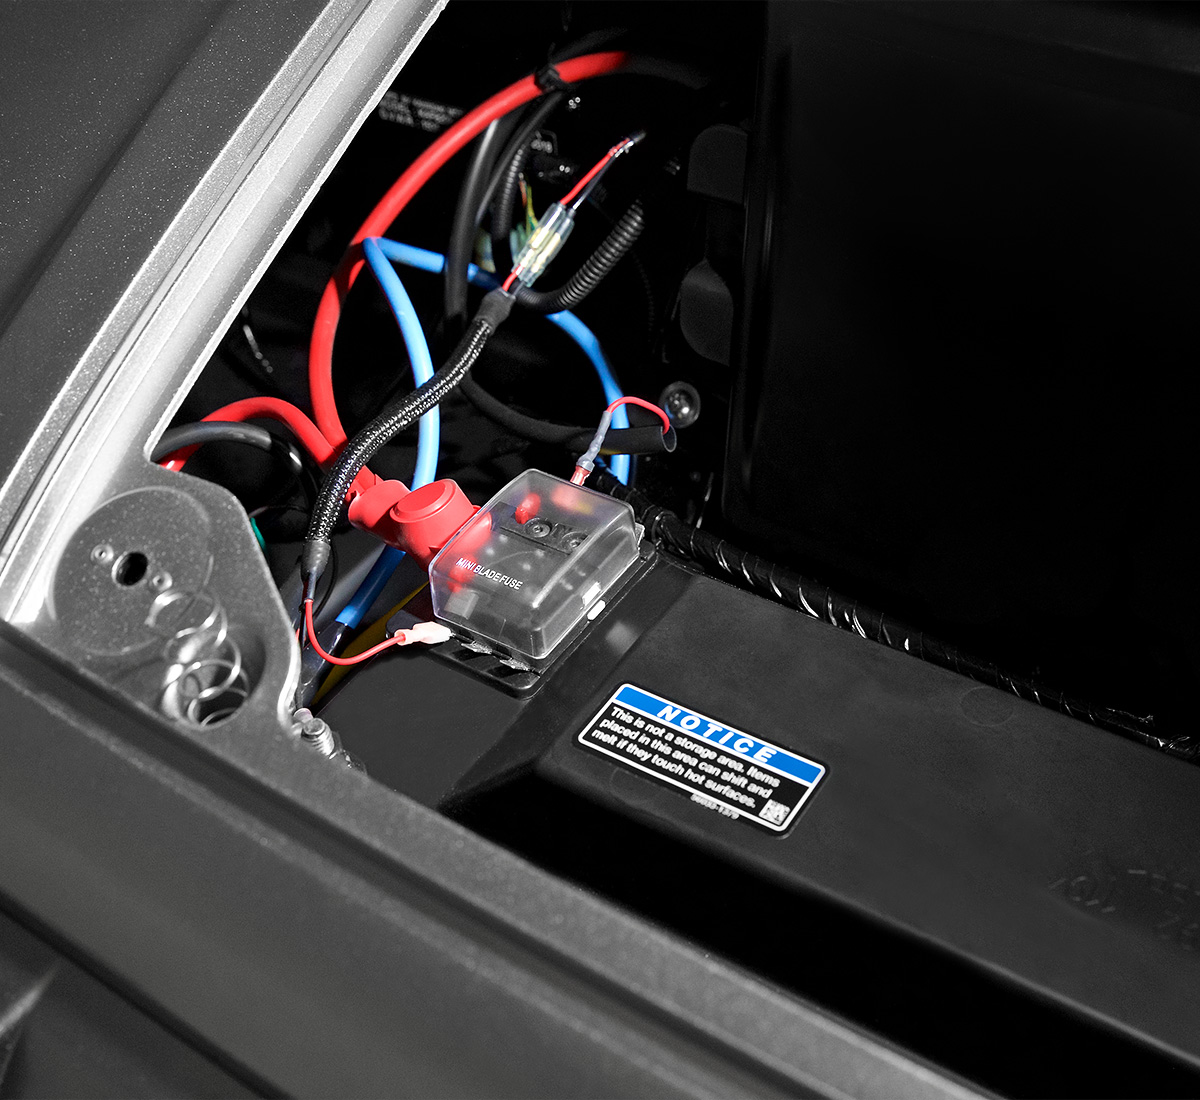 hight resolution of side x side accessory fuse box kawasaki mule fuse box location kawasaki mule fuse box